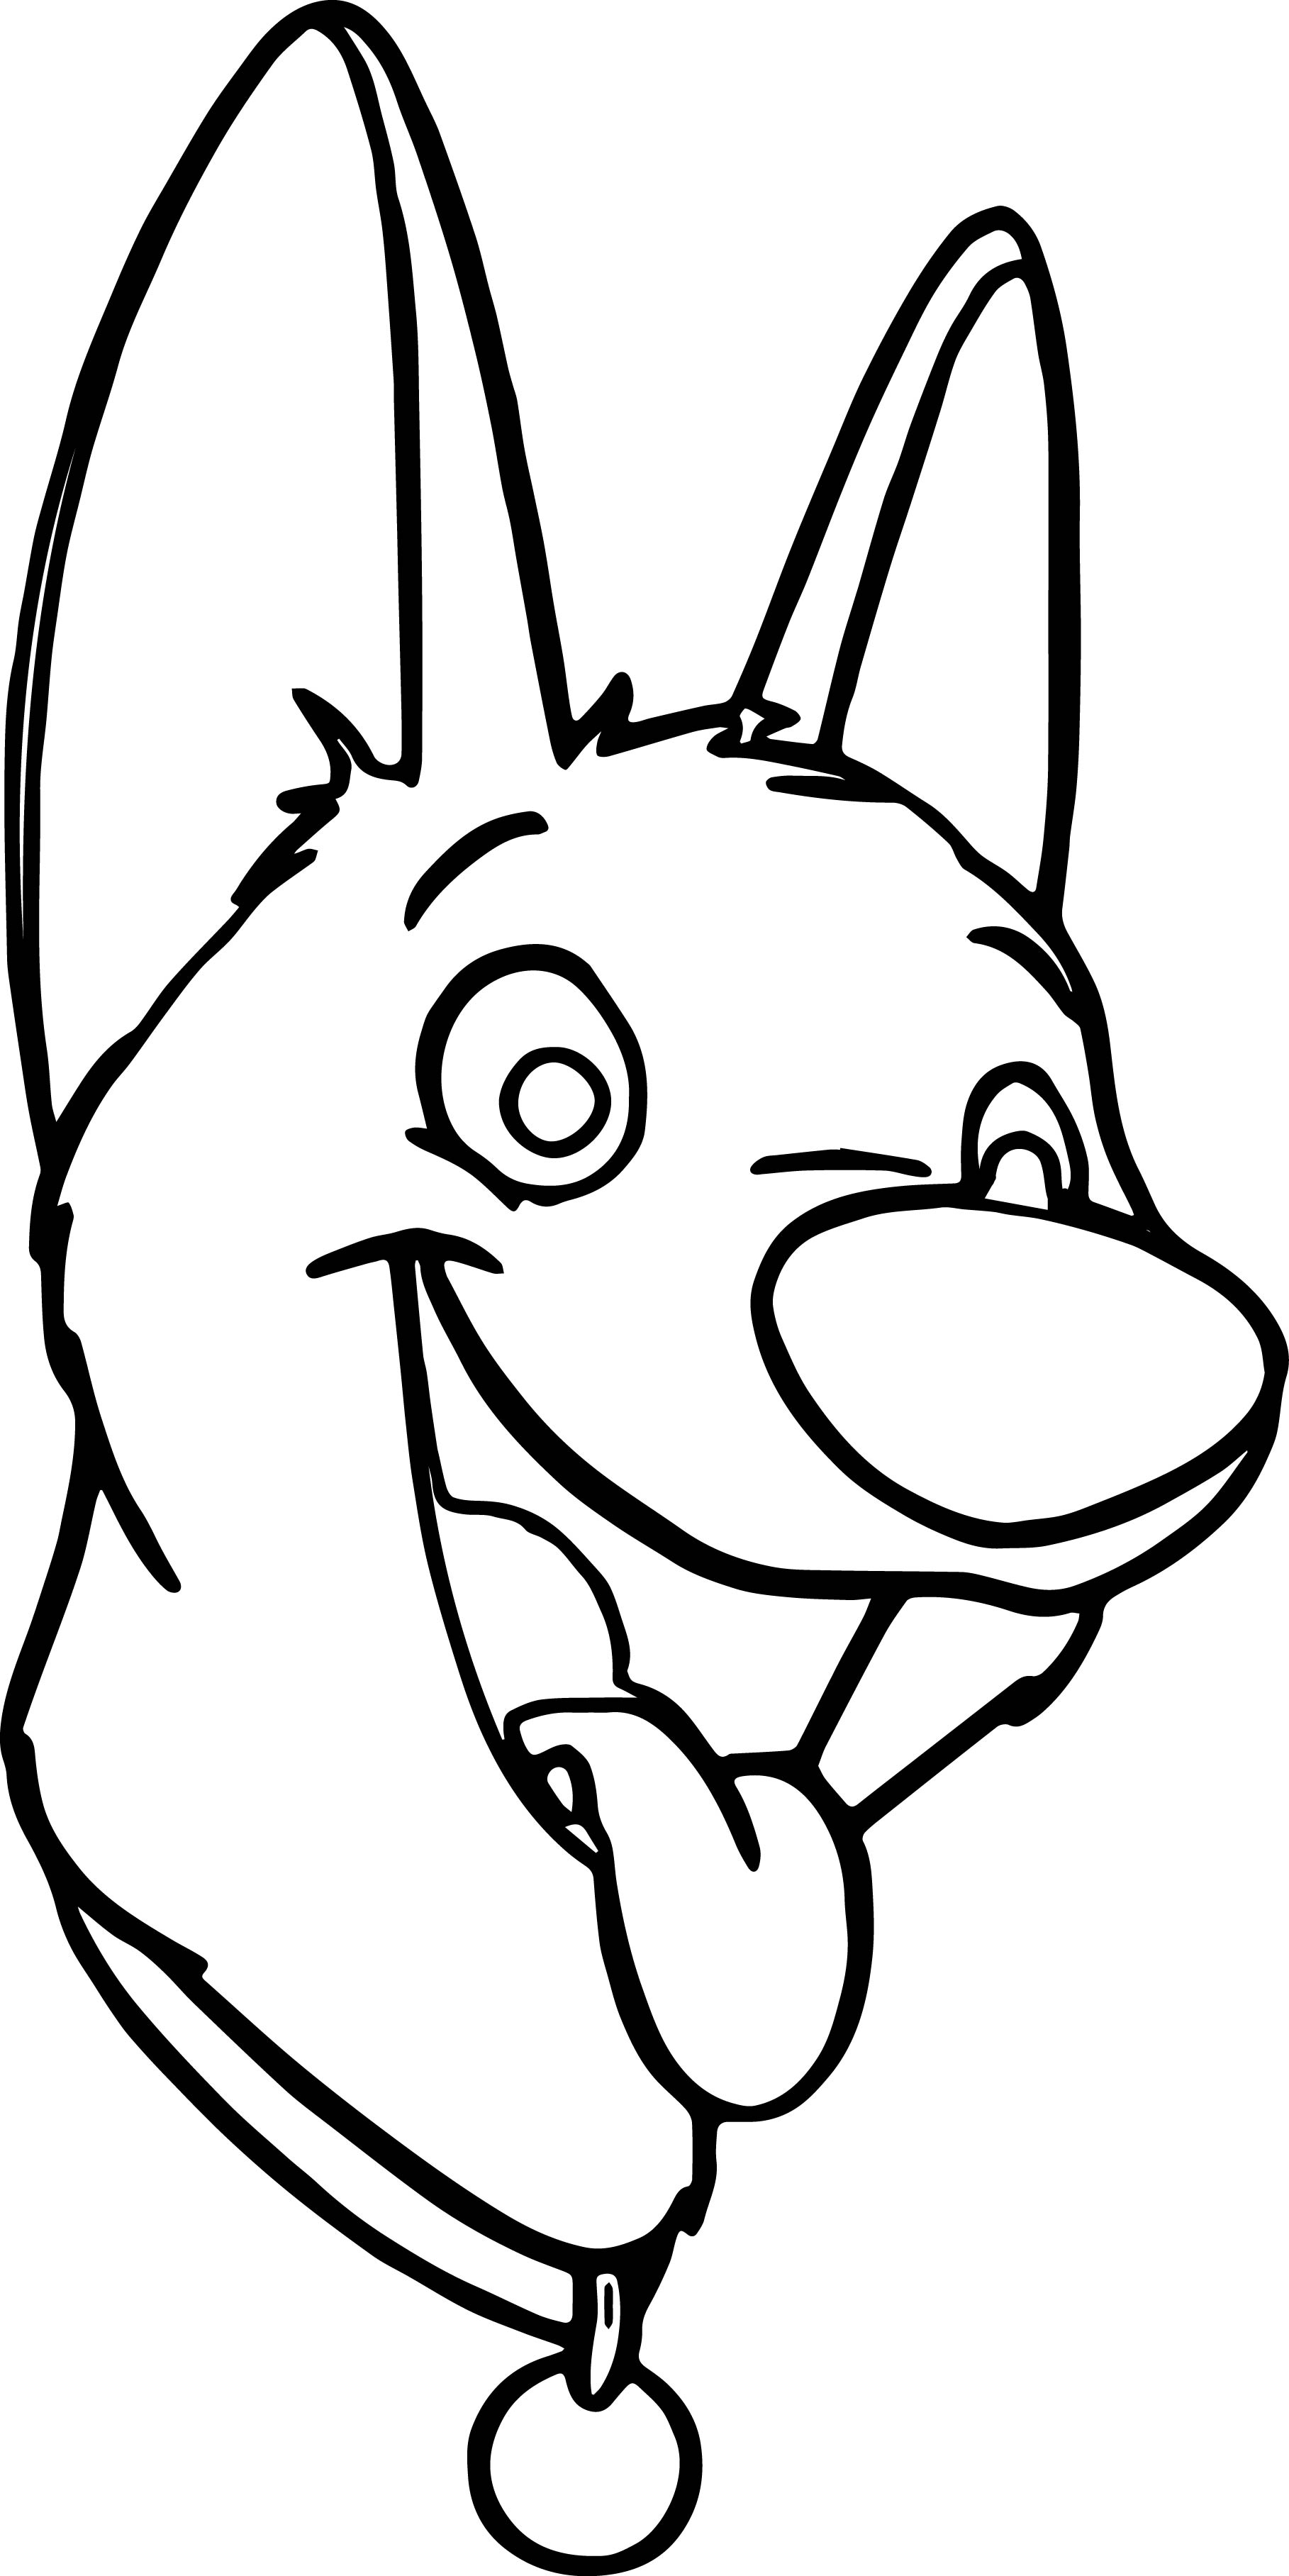 dog face coloring pages dog face coloring page coloring home face dog coloring pages